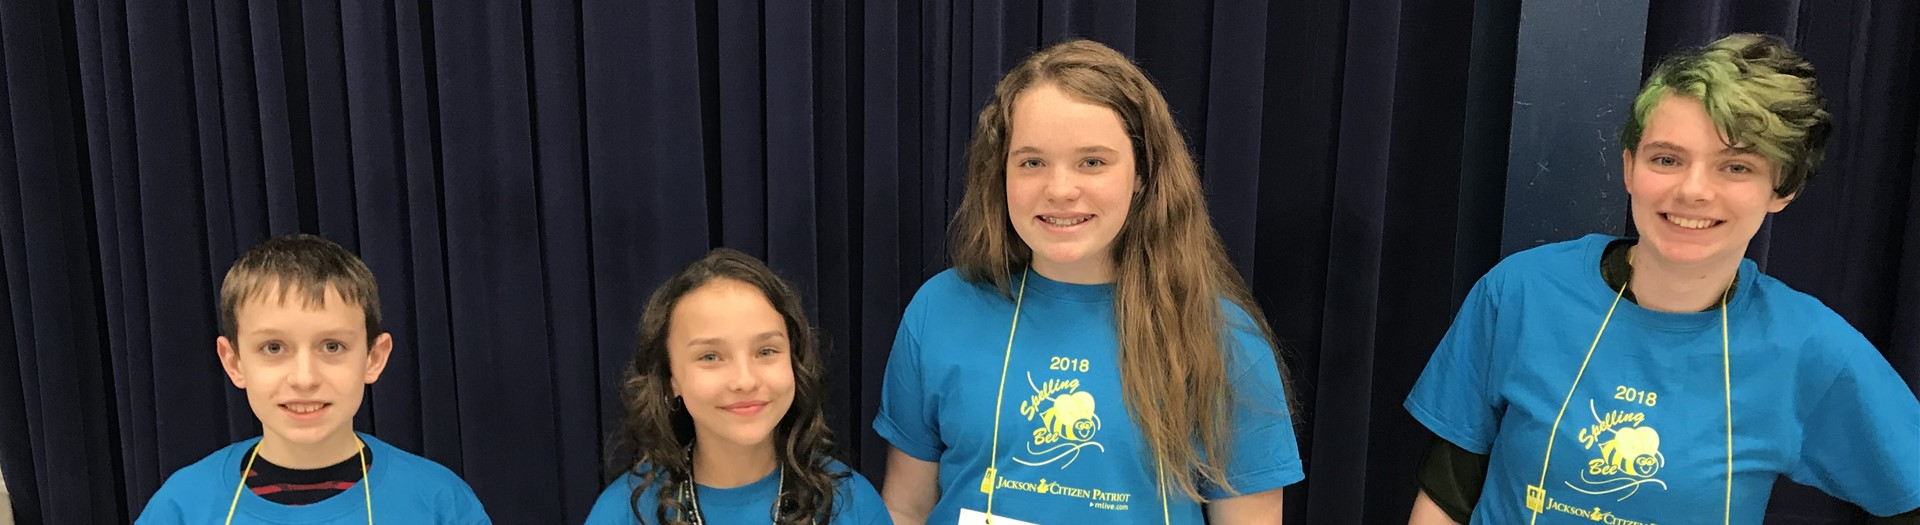 Four Middle School Students part of 2018 spelling bee